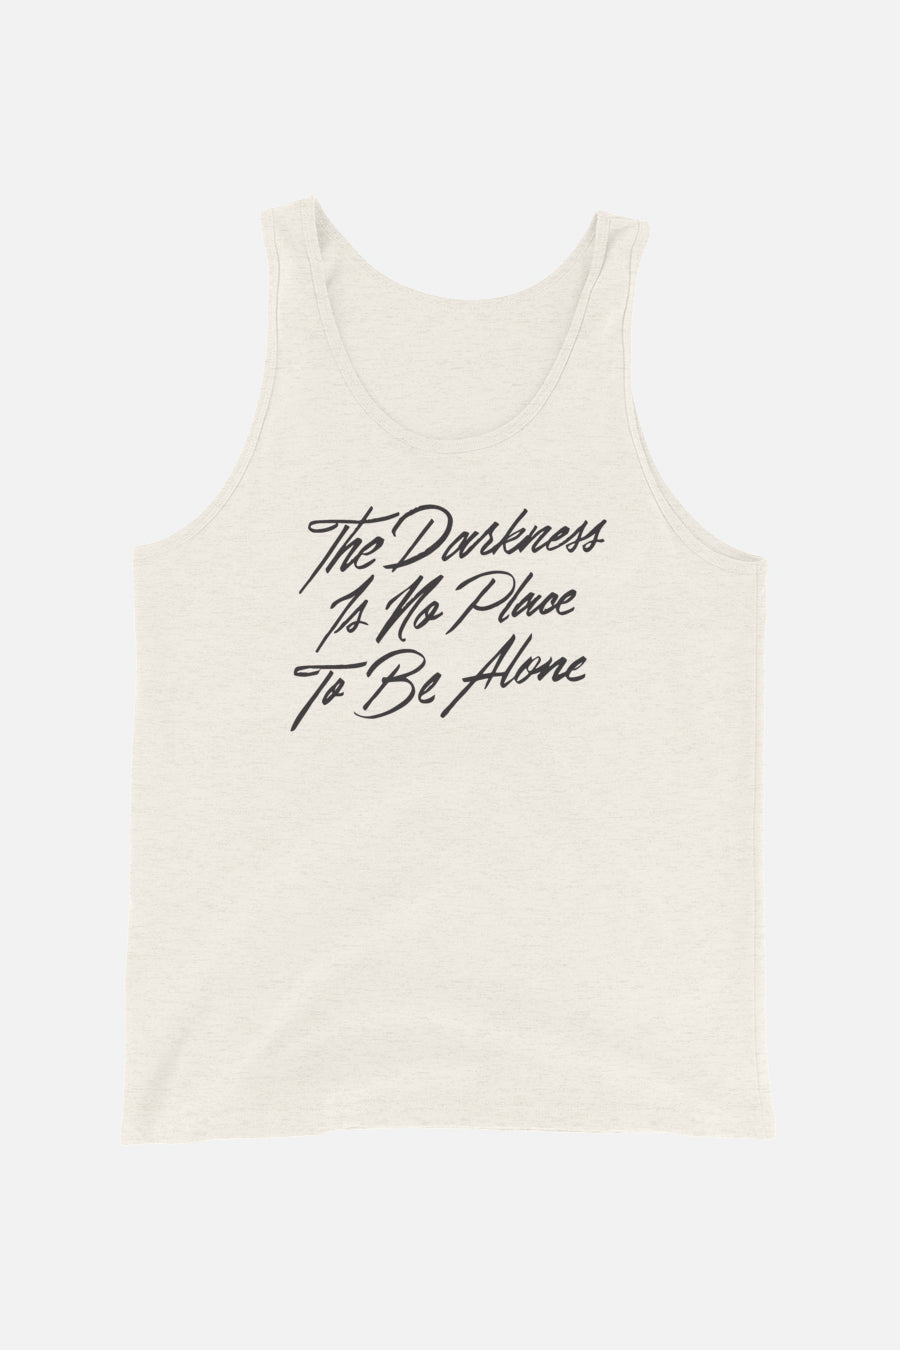 The Darkness is No Place to Be Alone Unisex Tank Top | The Invisible Life of Addie LaRue